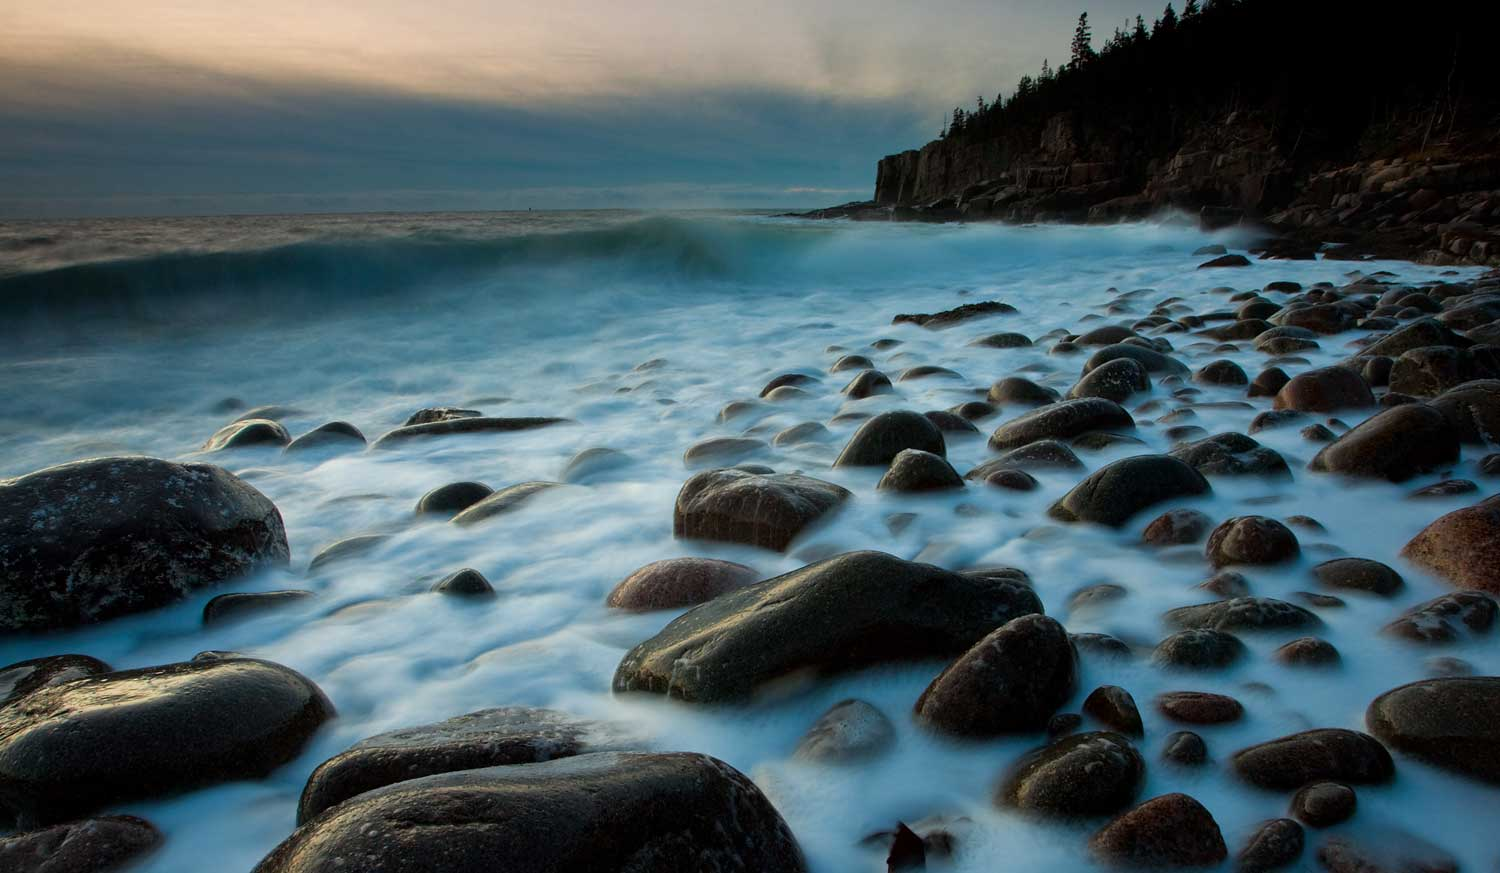 Finding the Best Photography Locations in Acadia — Images of